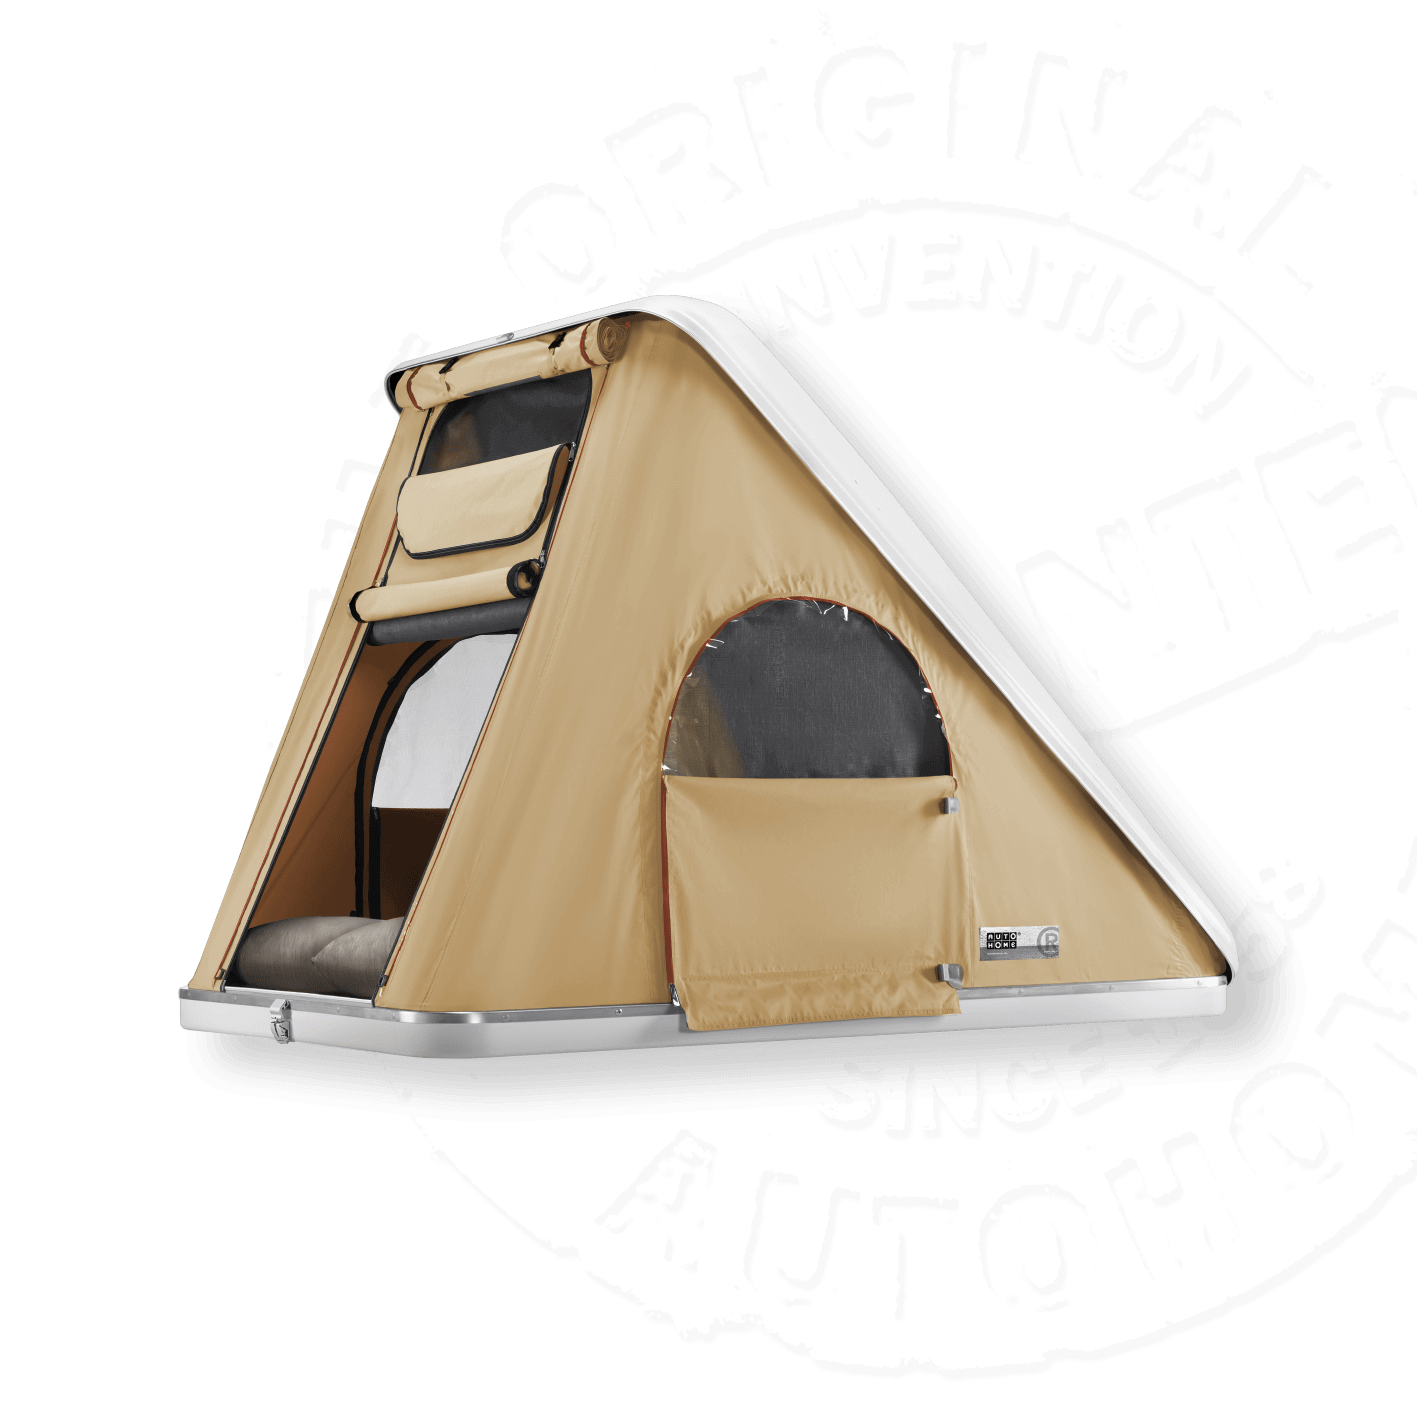 Safari Columbus Prospective - Roof Top Tents by Autohome